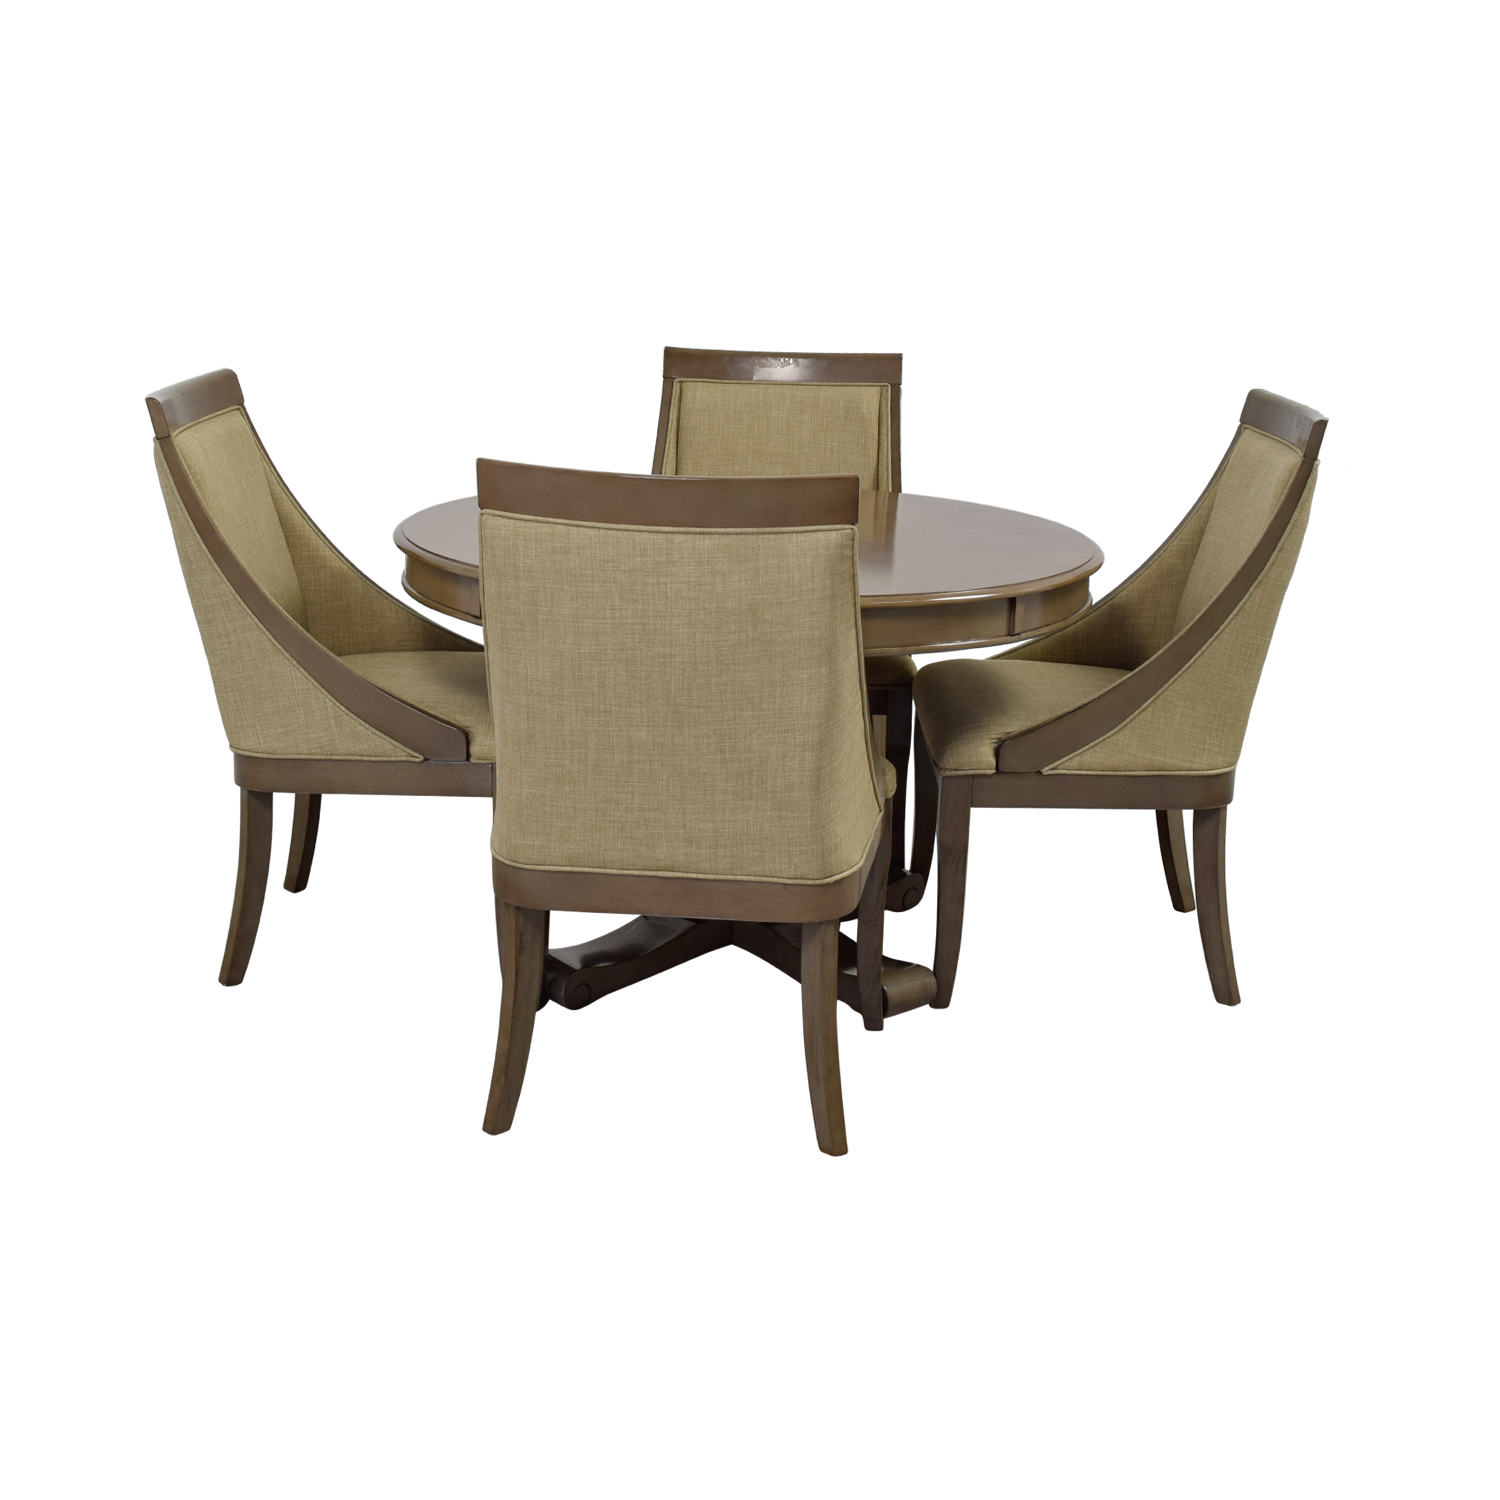 buy Bob's Furniture Gatsby Round Dining Set with Swoop Chairs Bob's Furniture Tables